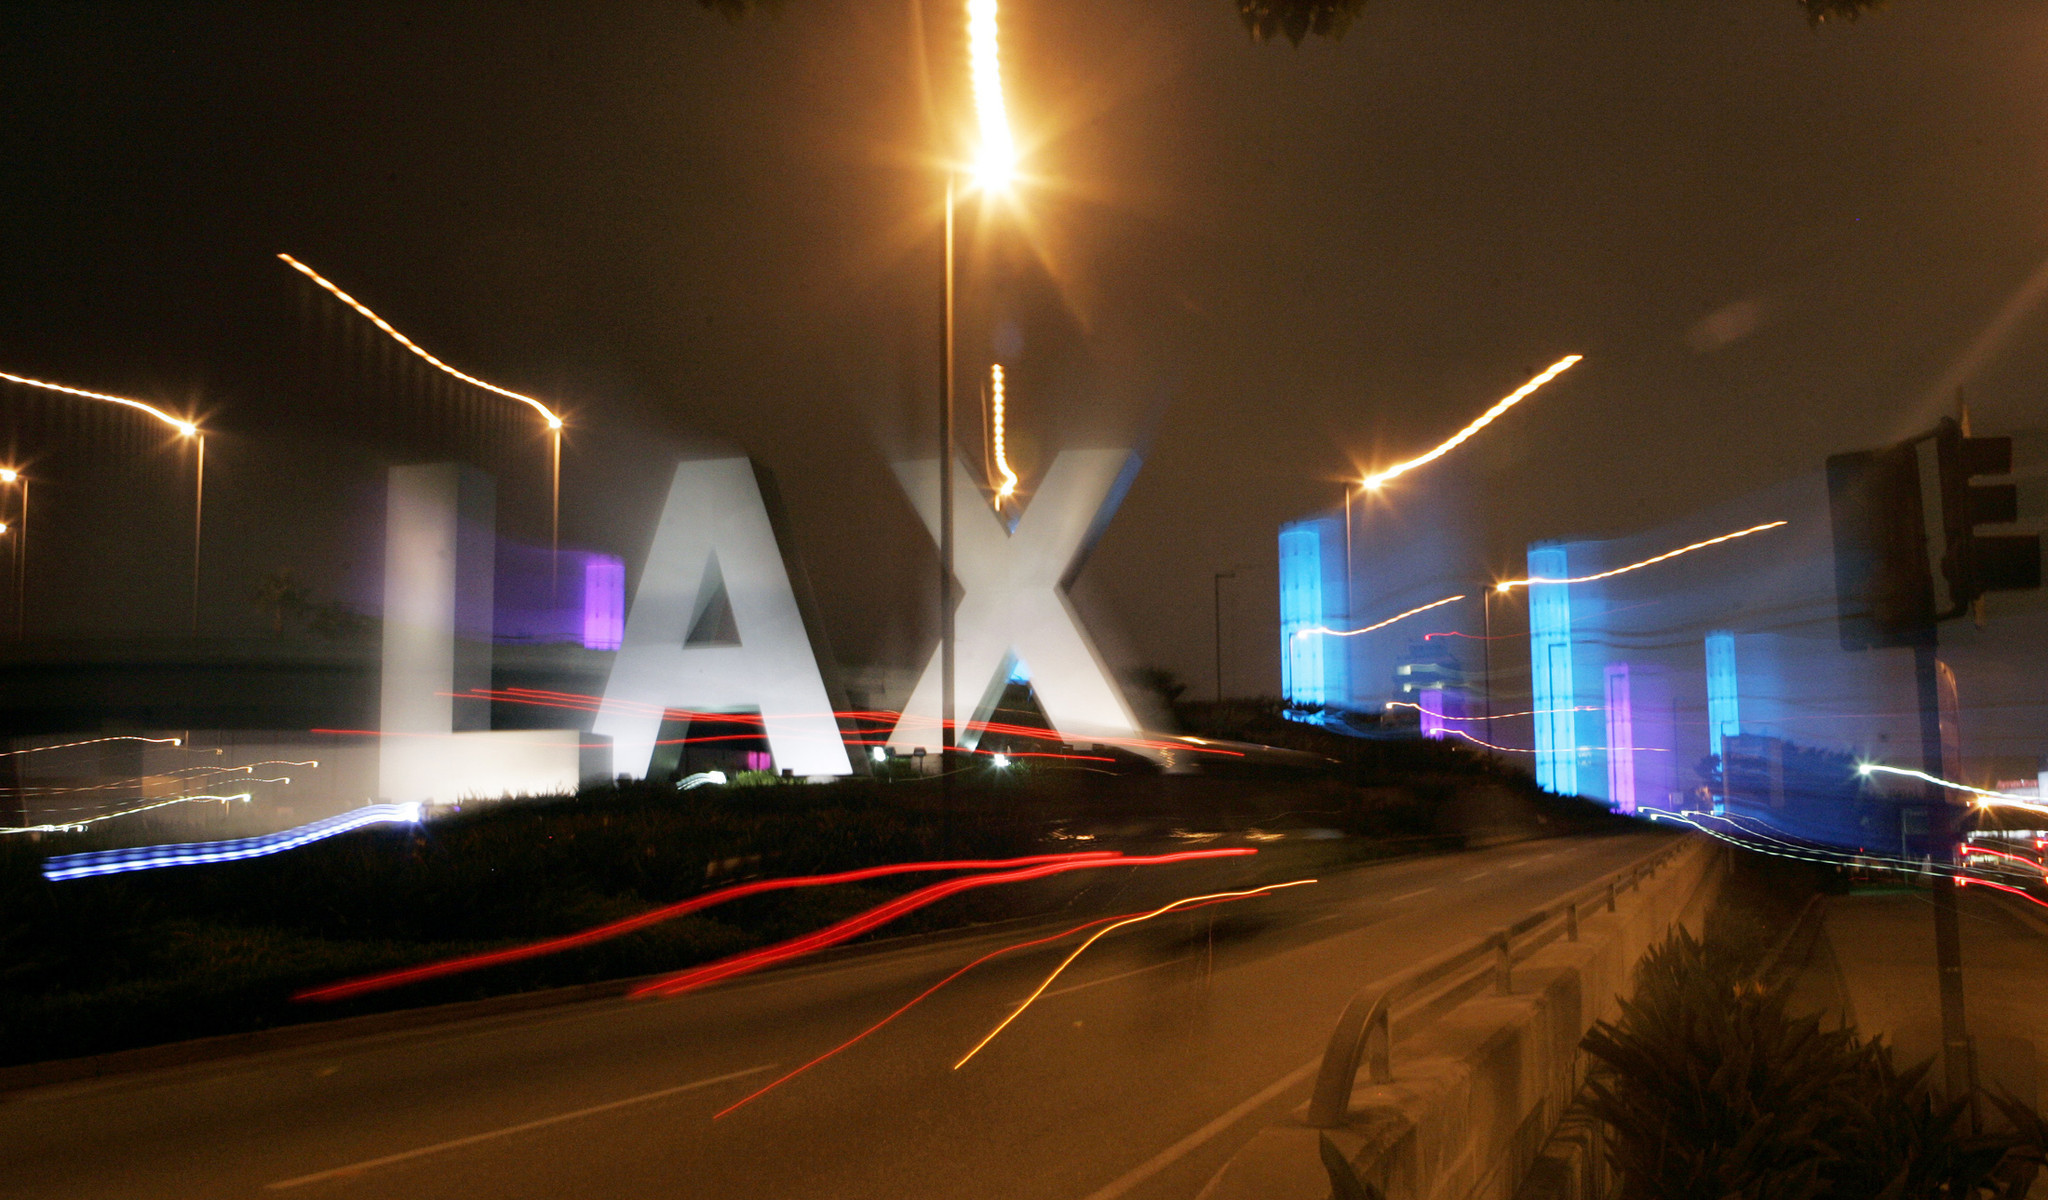 Orbitz predicts LAX will be busiest airport in U.S. over Thanksgiving